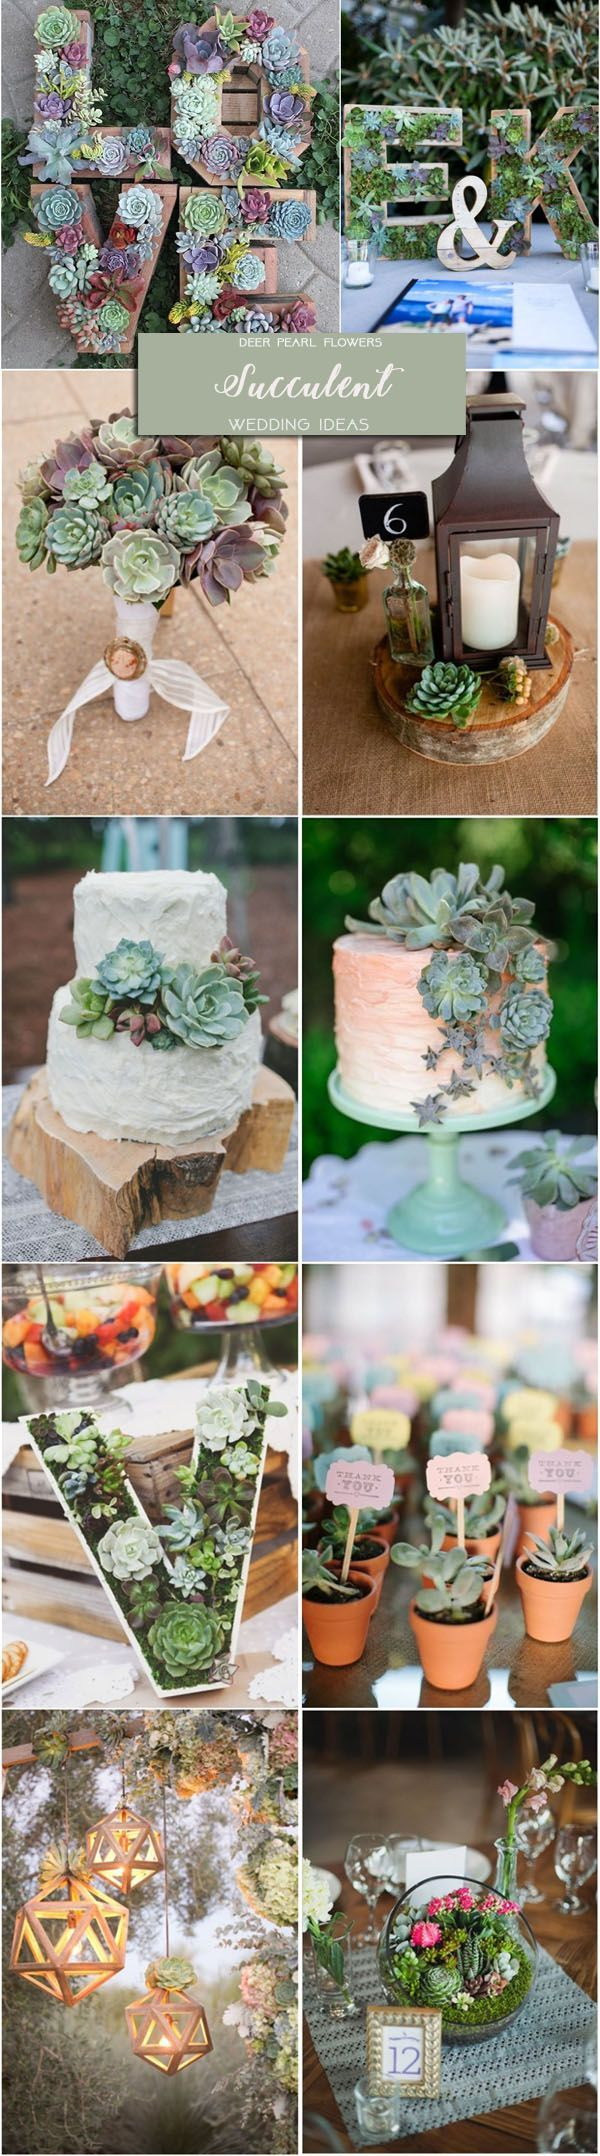 Rustic green garden wedding ideas - succulent wedding theme decor ideas / http://www.deerpearlflowers.com/rustic-wedding-themes-ideas-part-2/2/